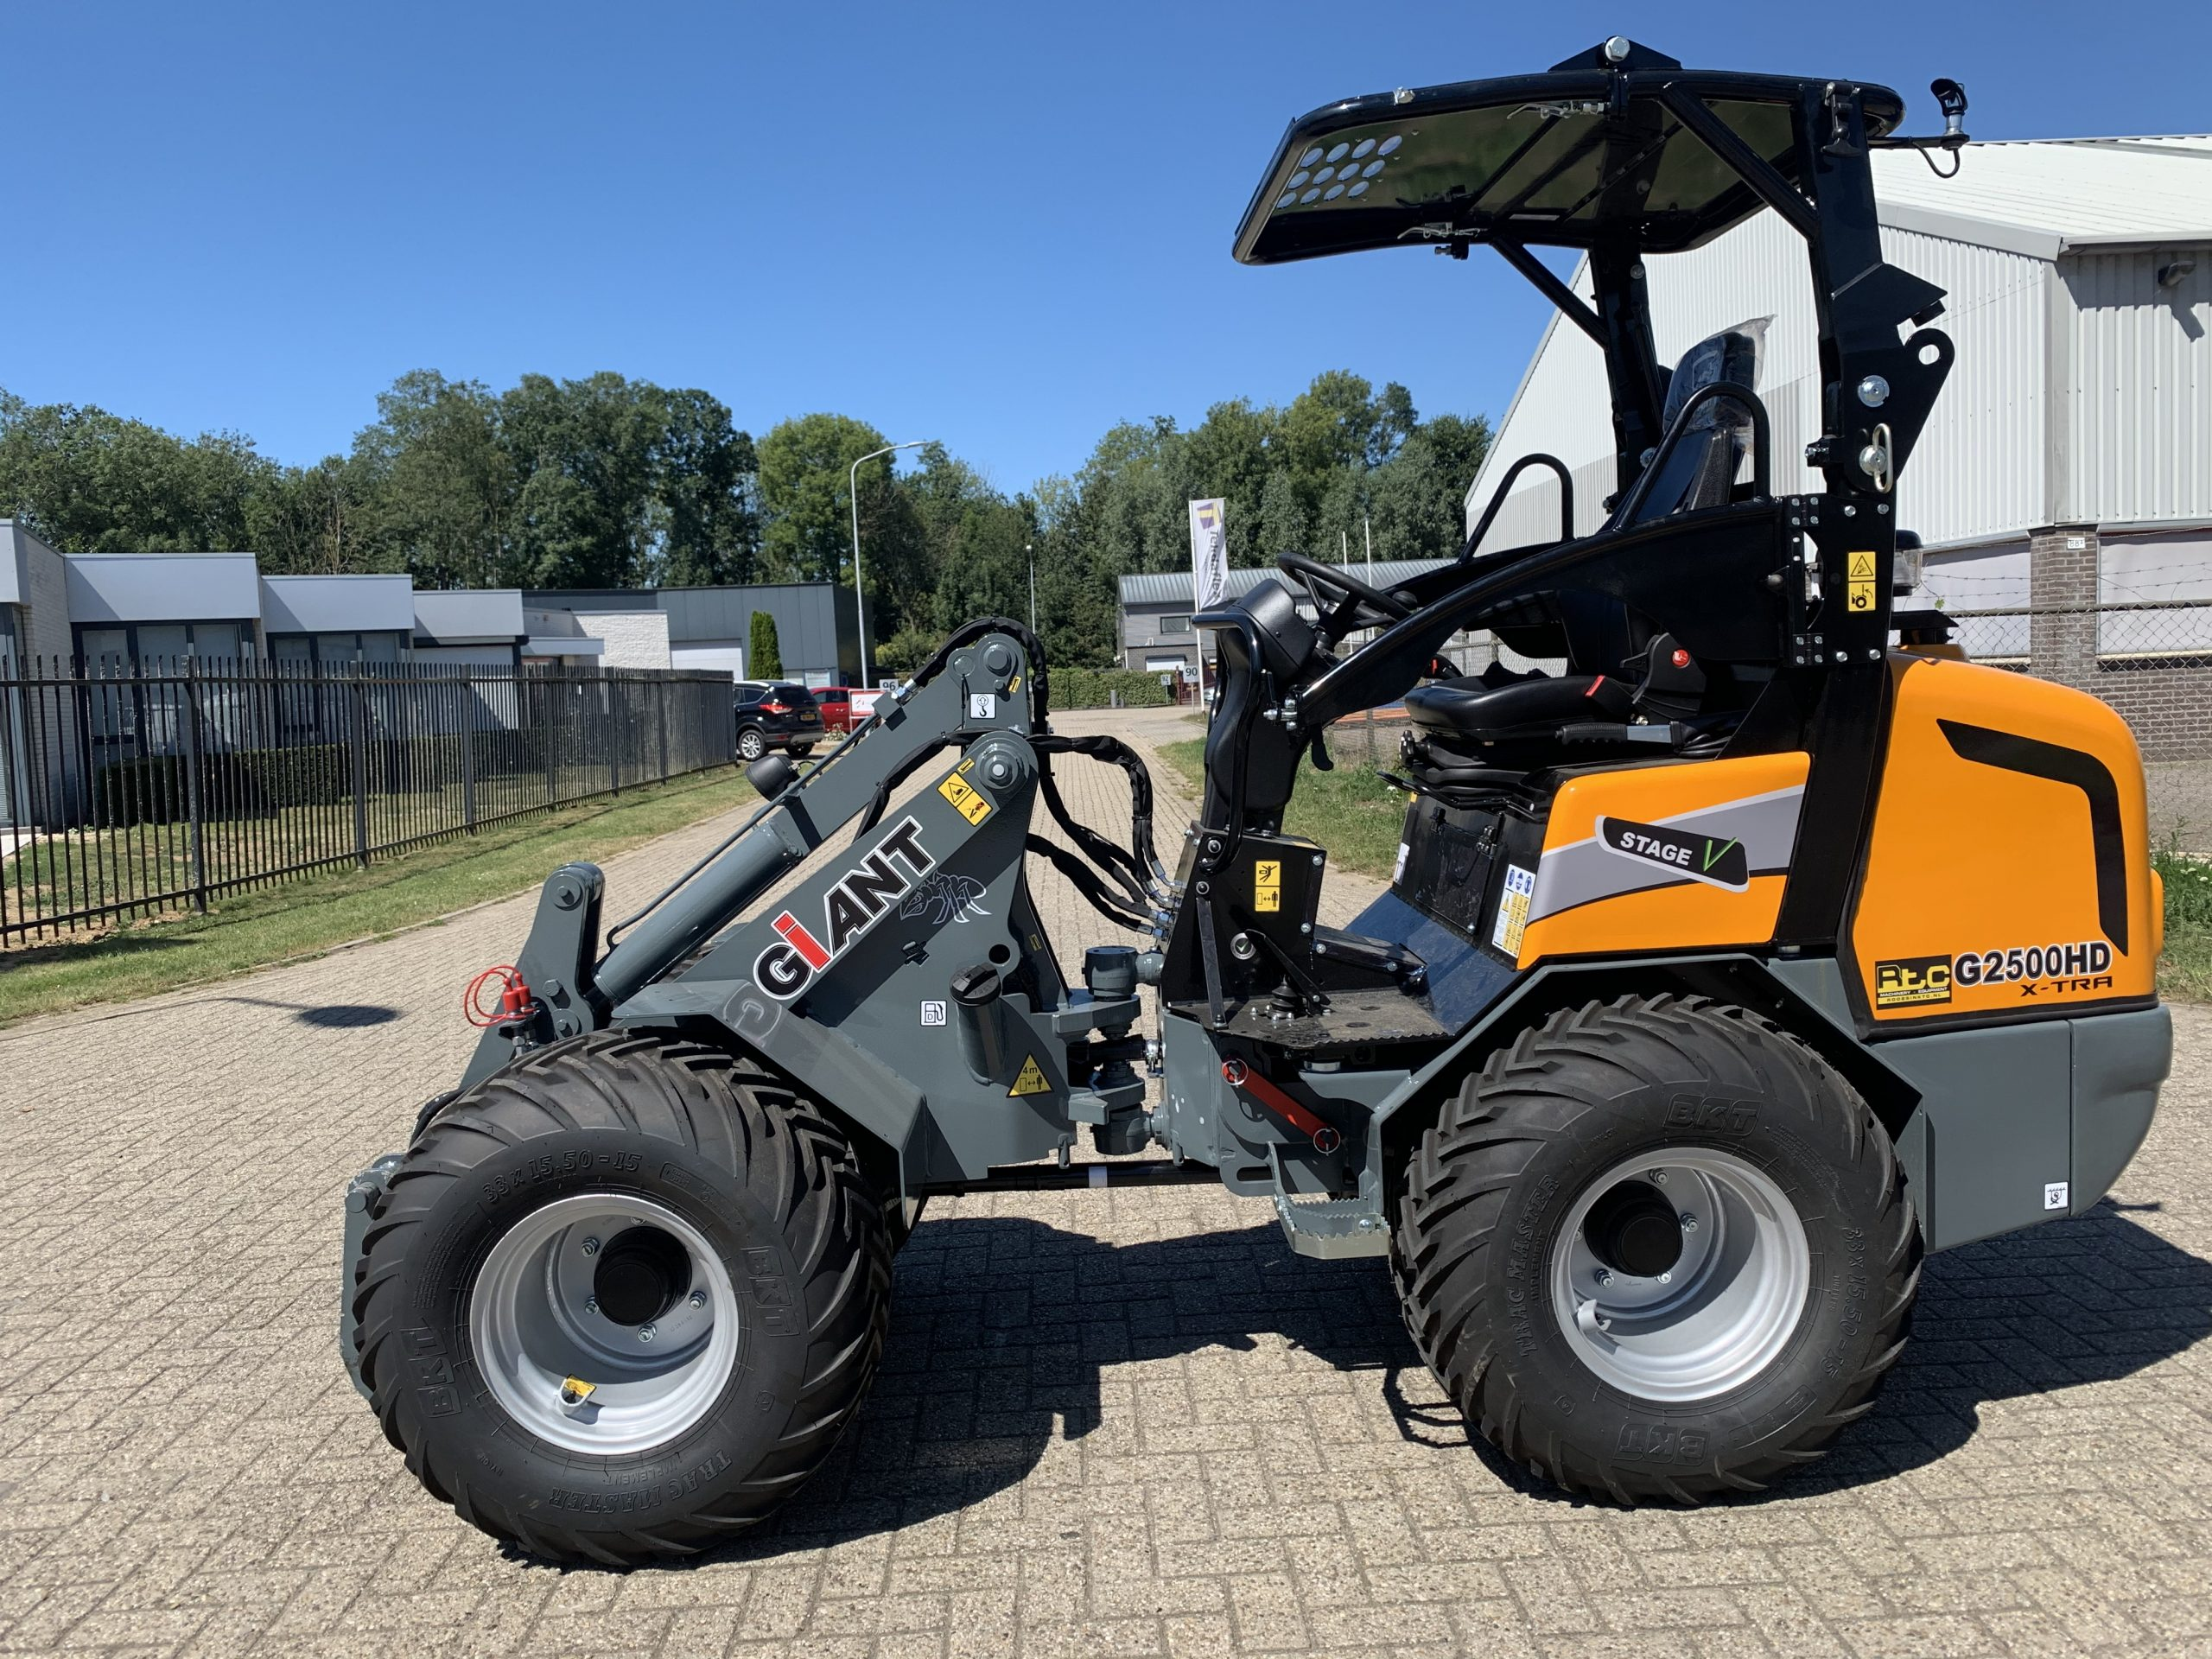 Giant G2500HD x tra Stage V